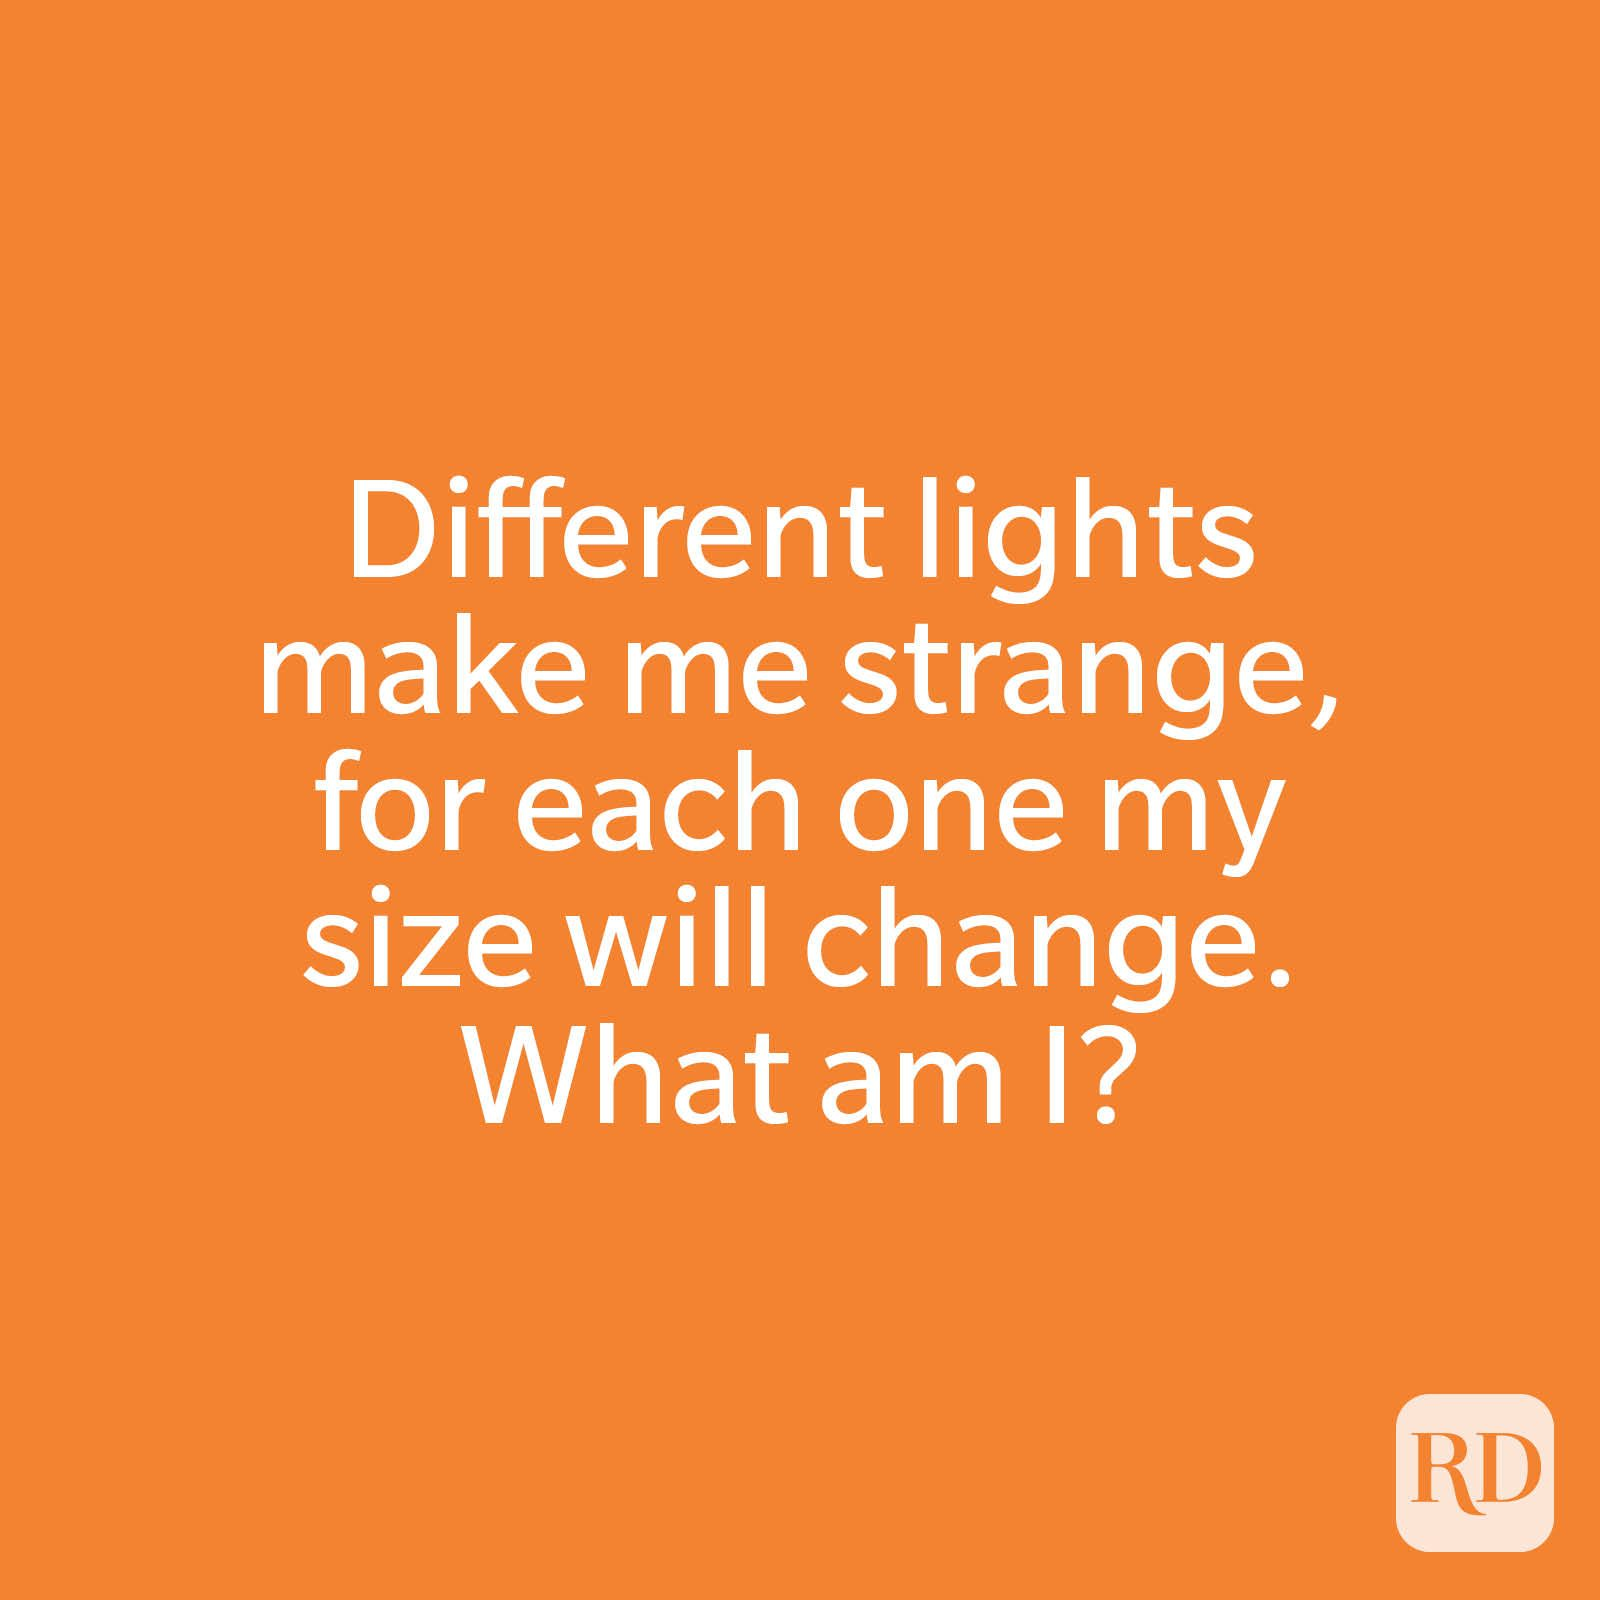 Different lights make me strange, for each one my size will change. What am I?